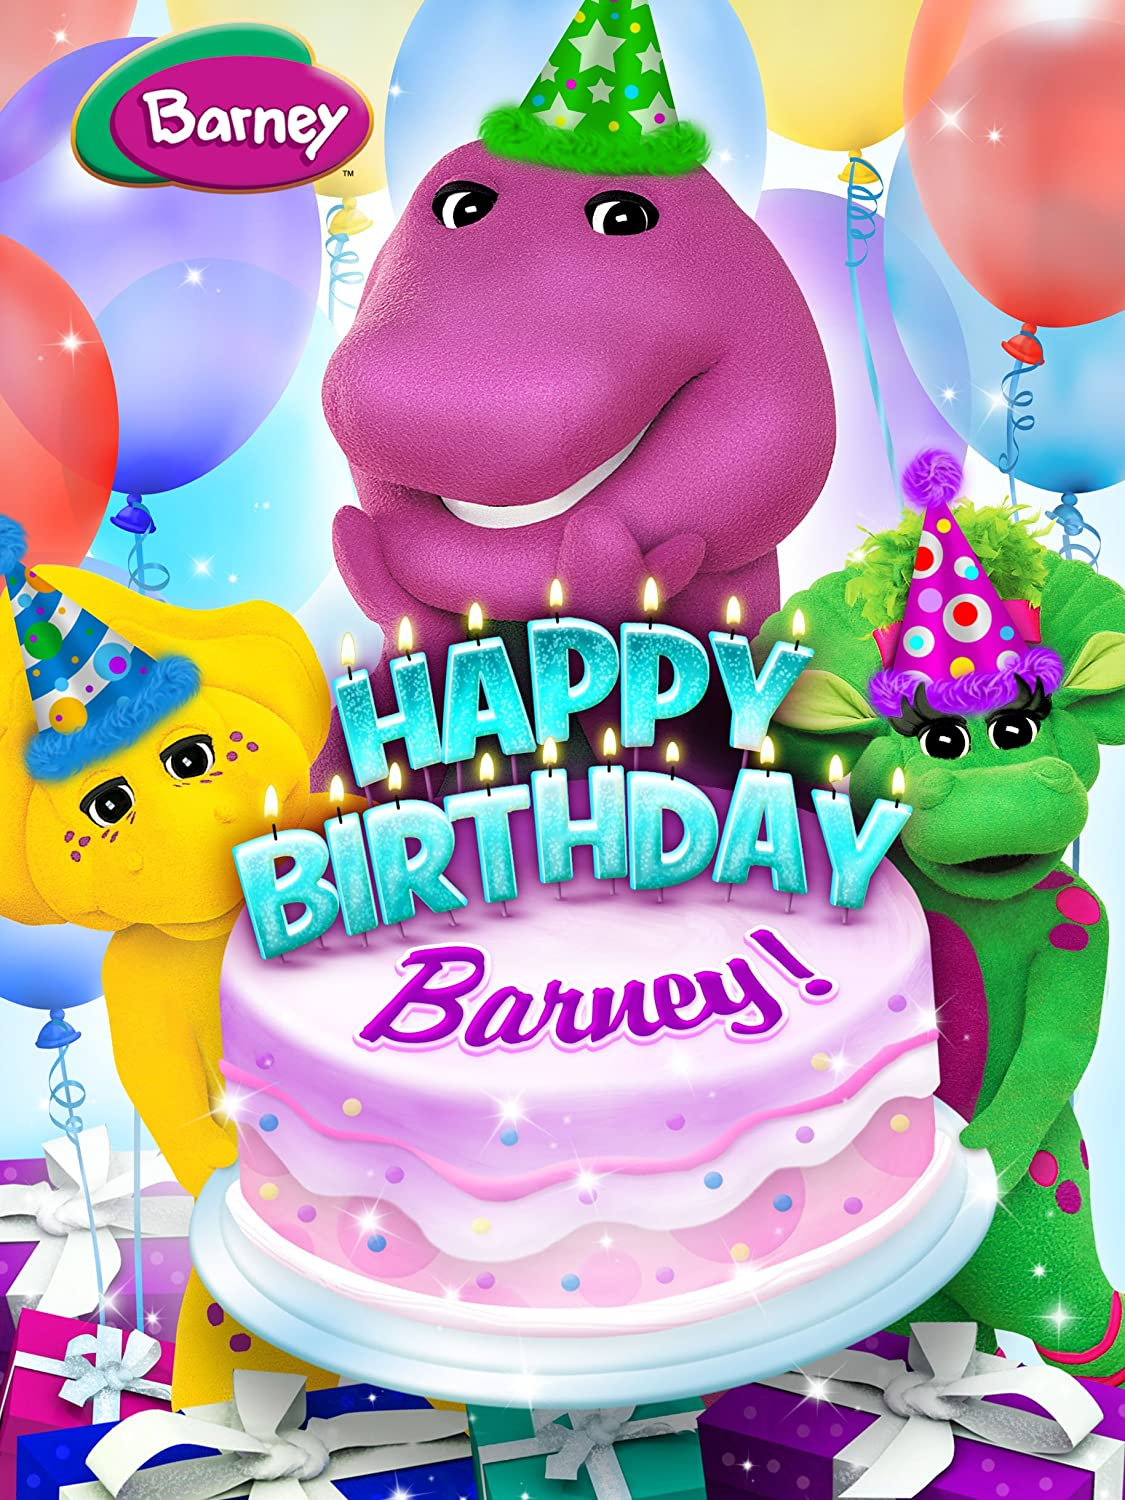 http://www.amazon.com/Barney-Happy-Birthday/dp/B00HW3EH5M/